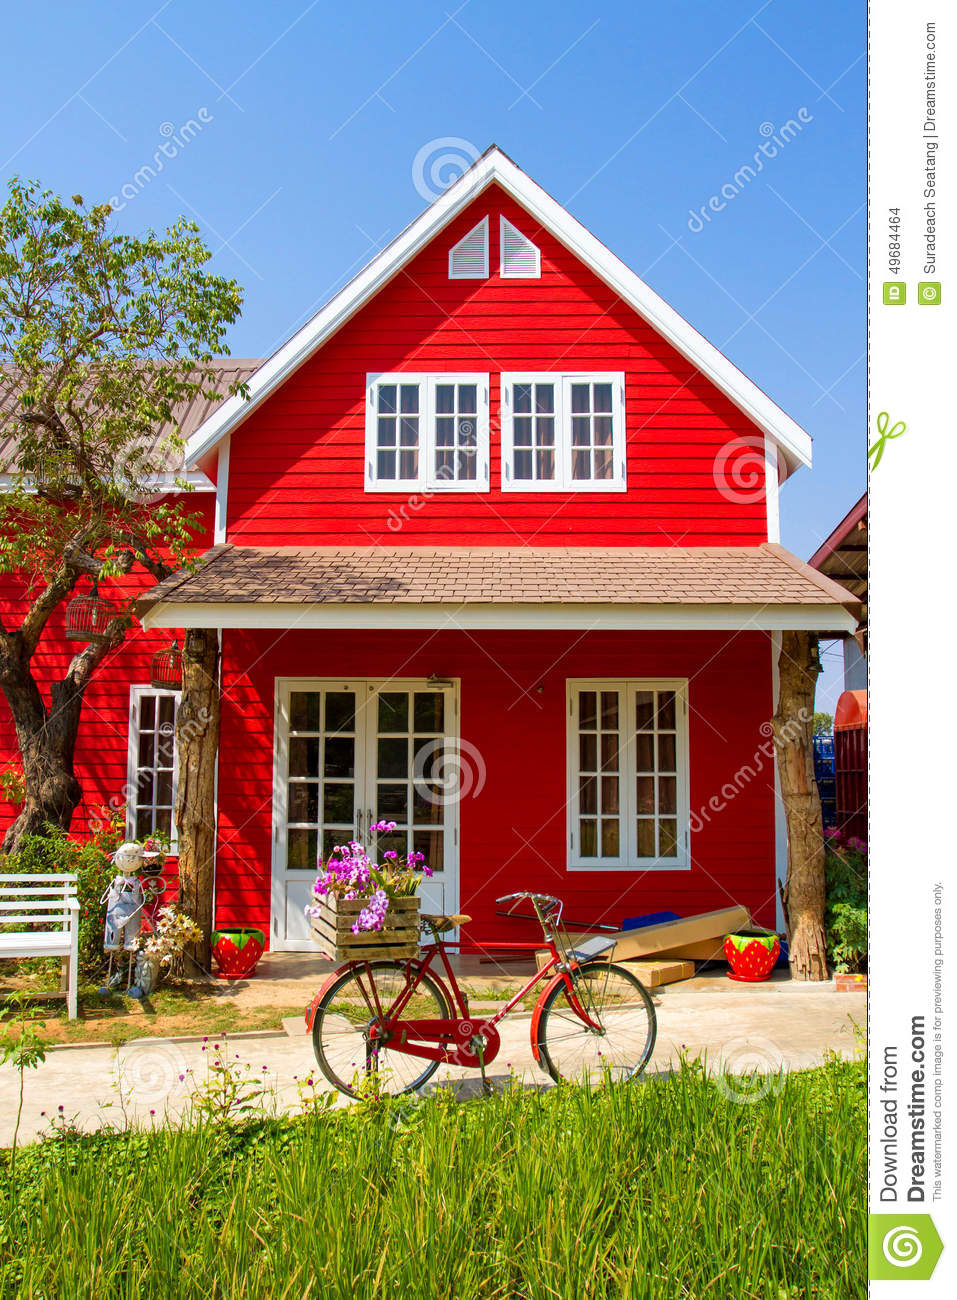 small red house farm thailand 49684464